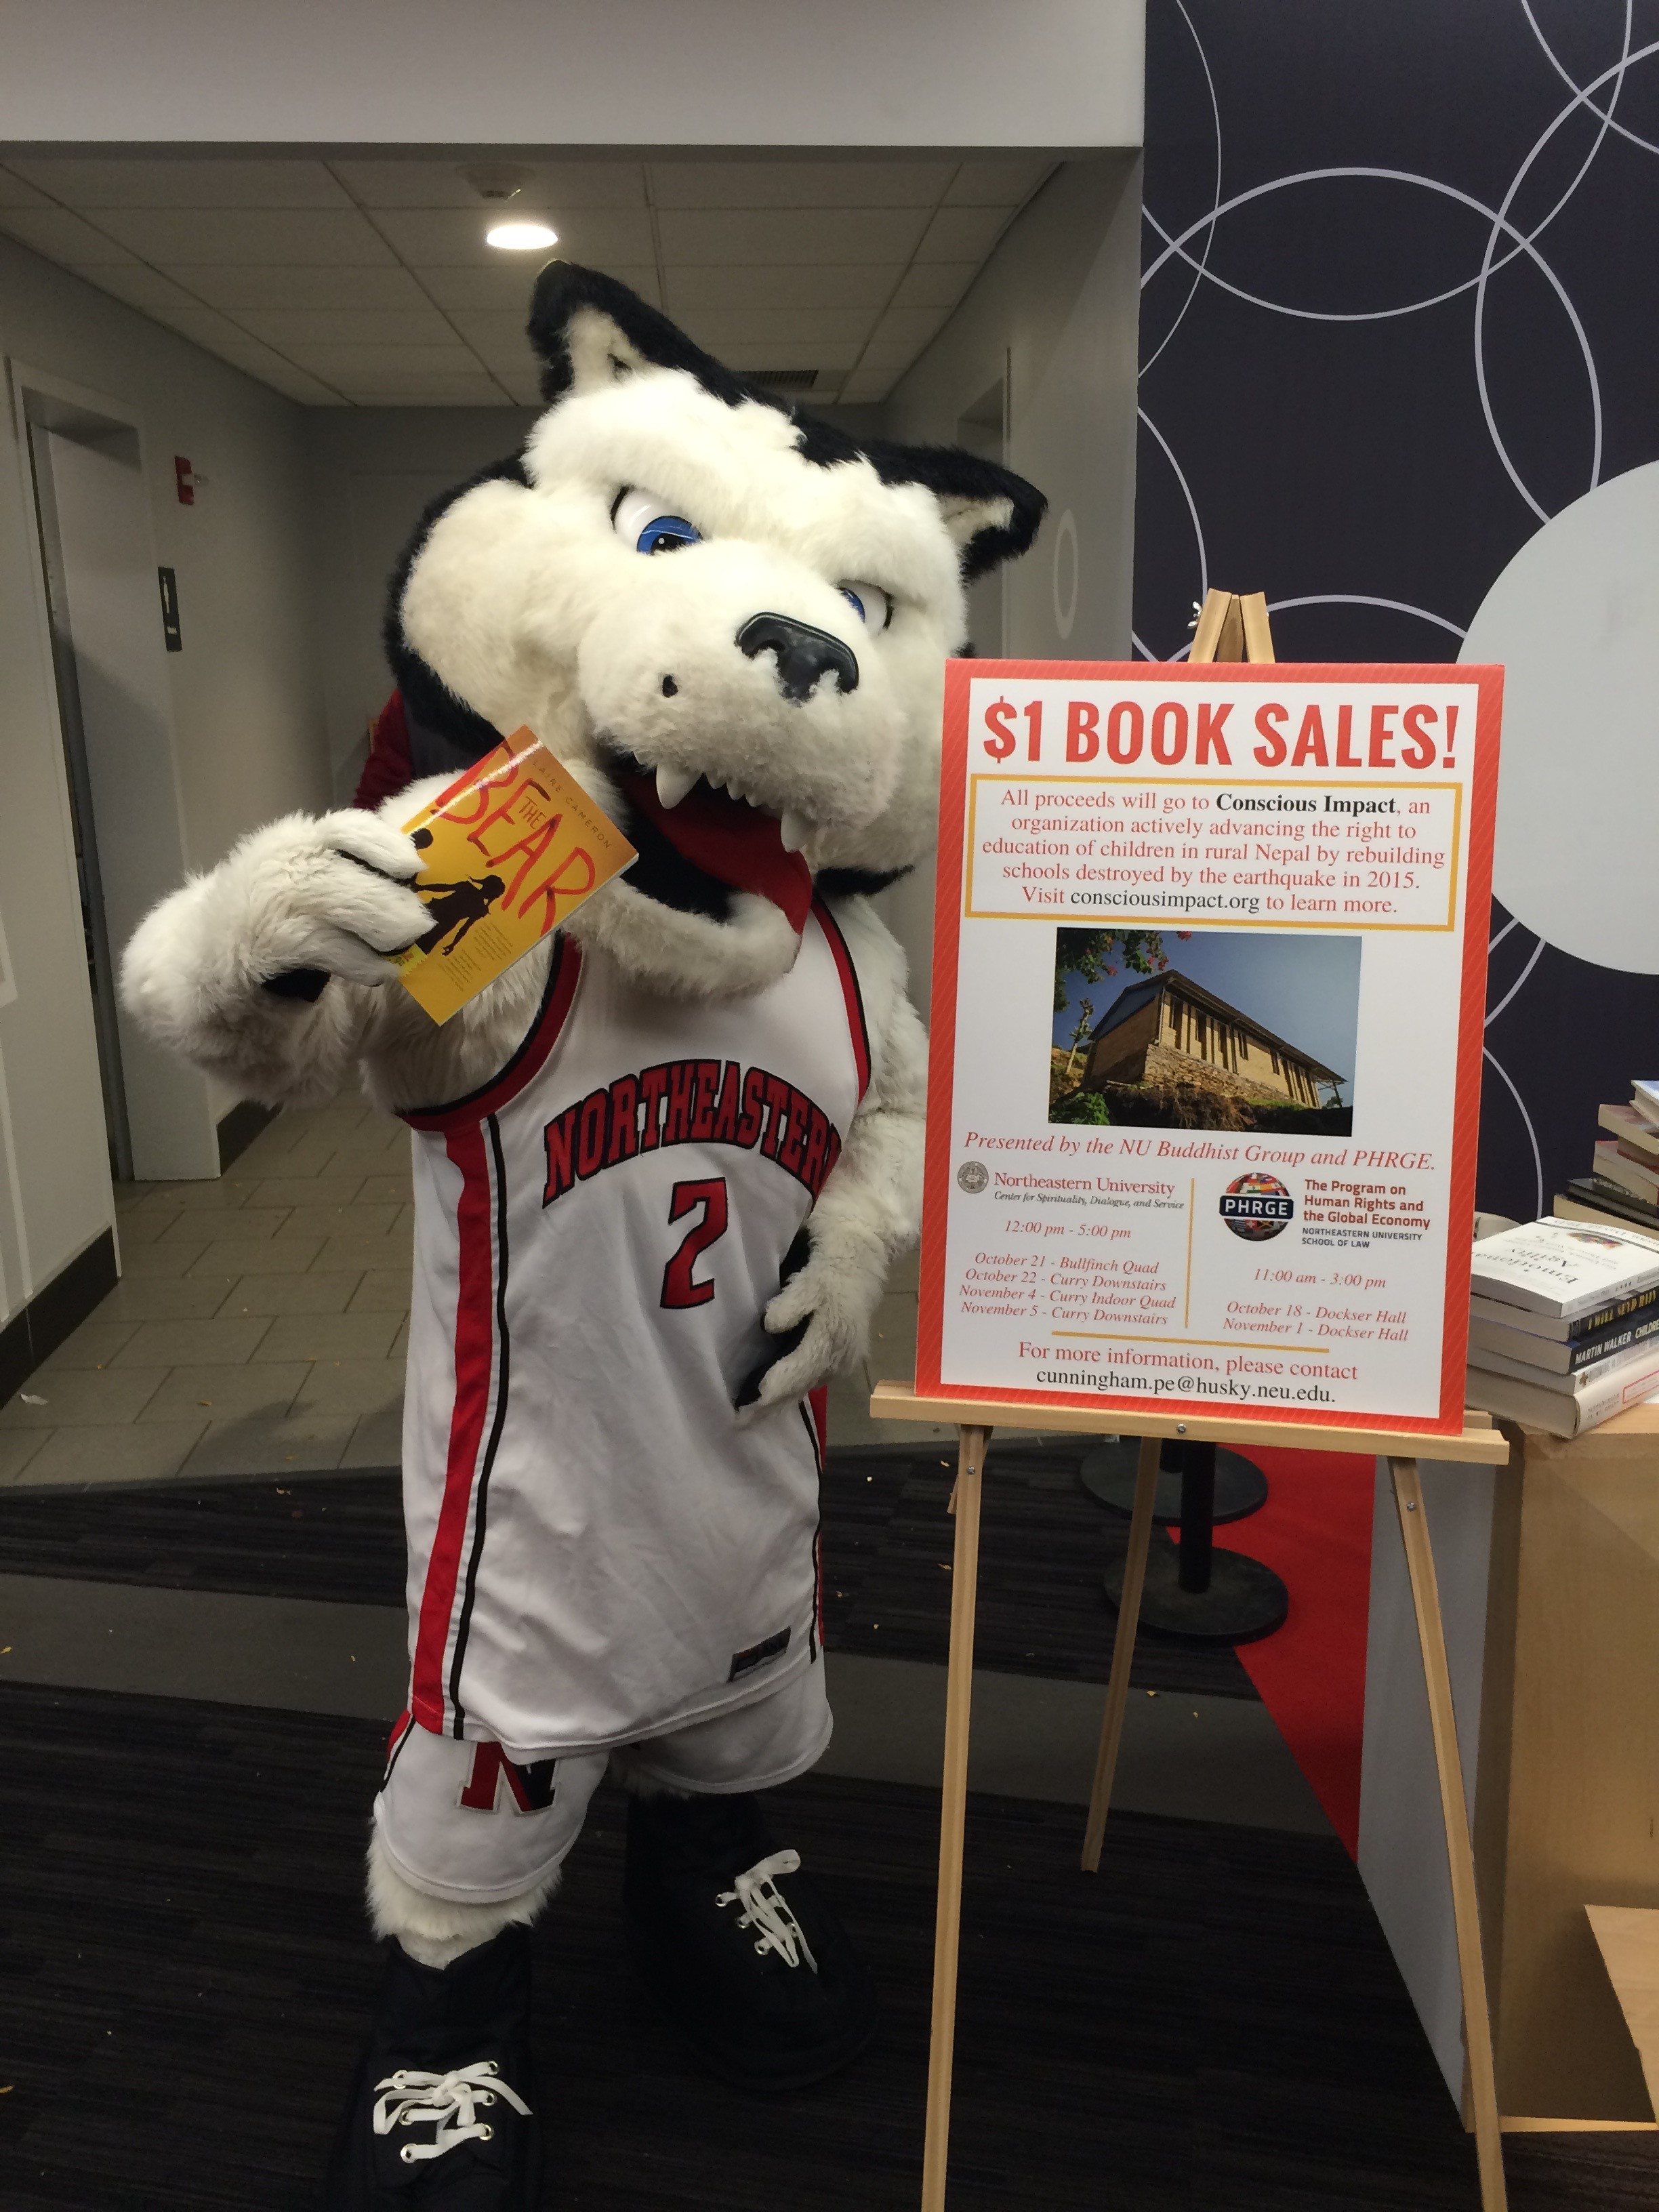 Northeastern's mascot Paws striking a pose!